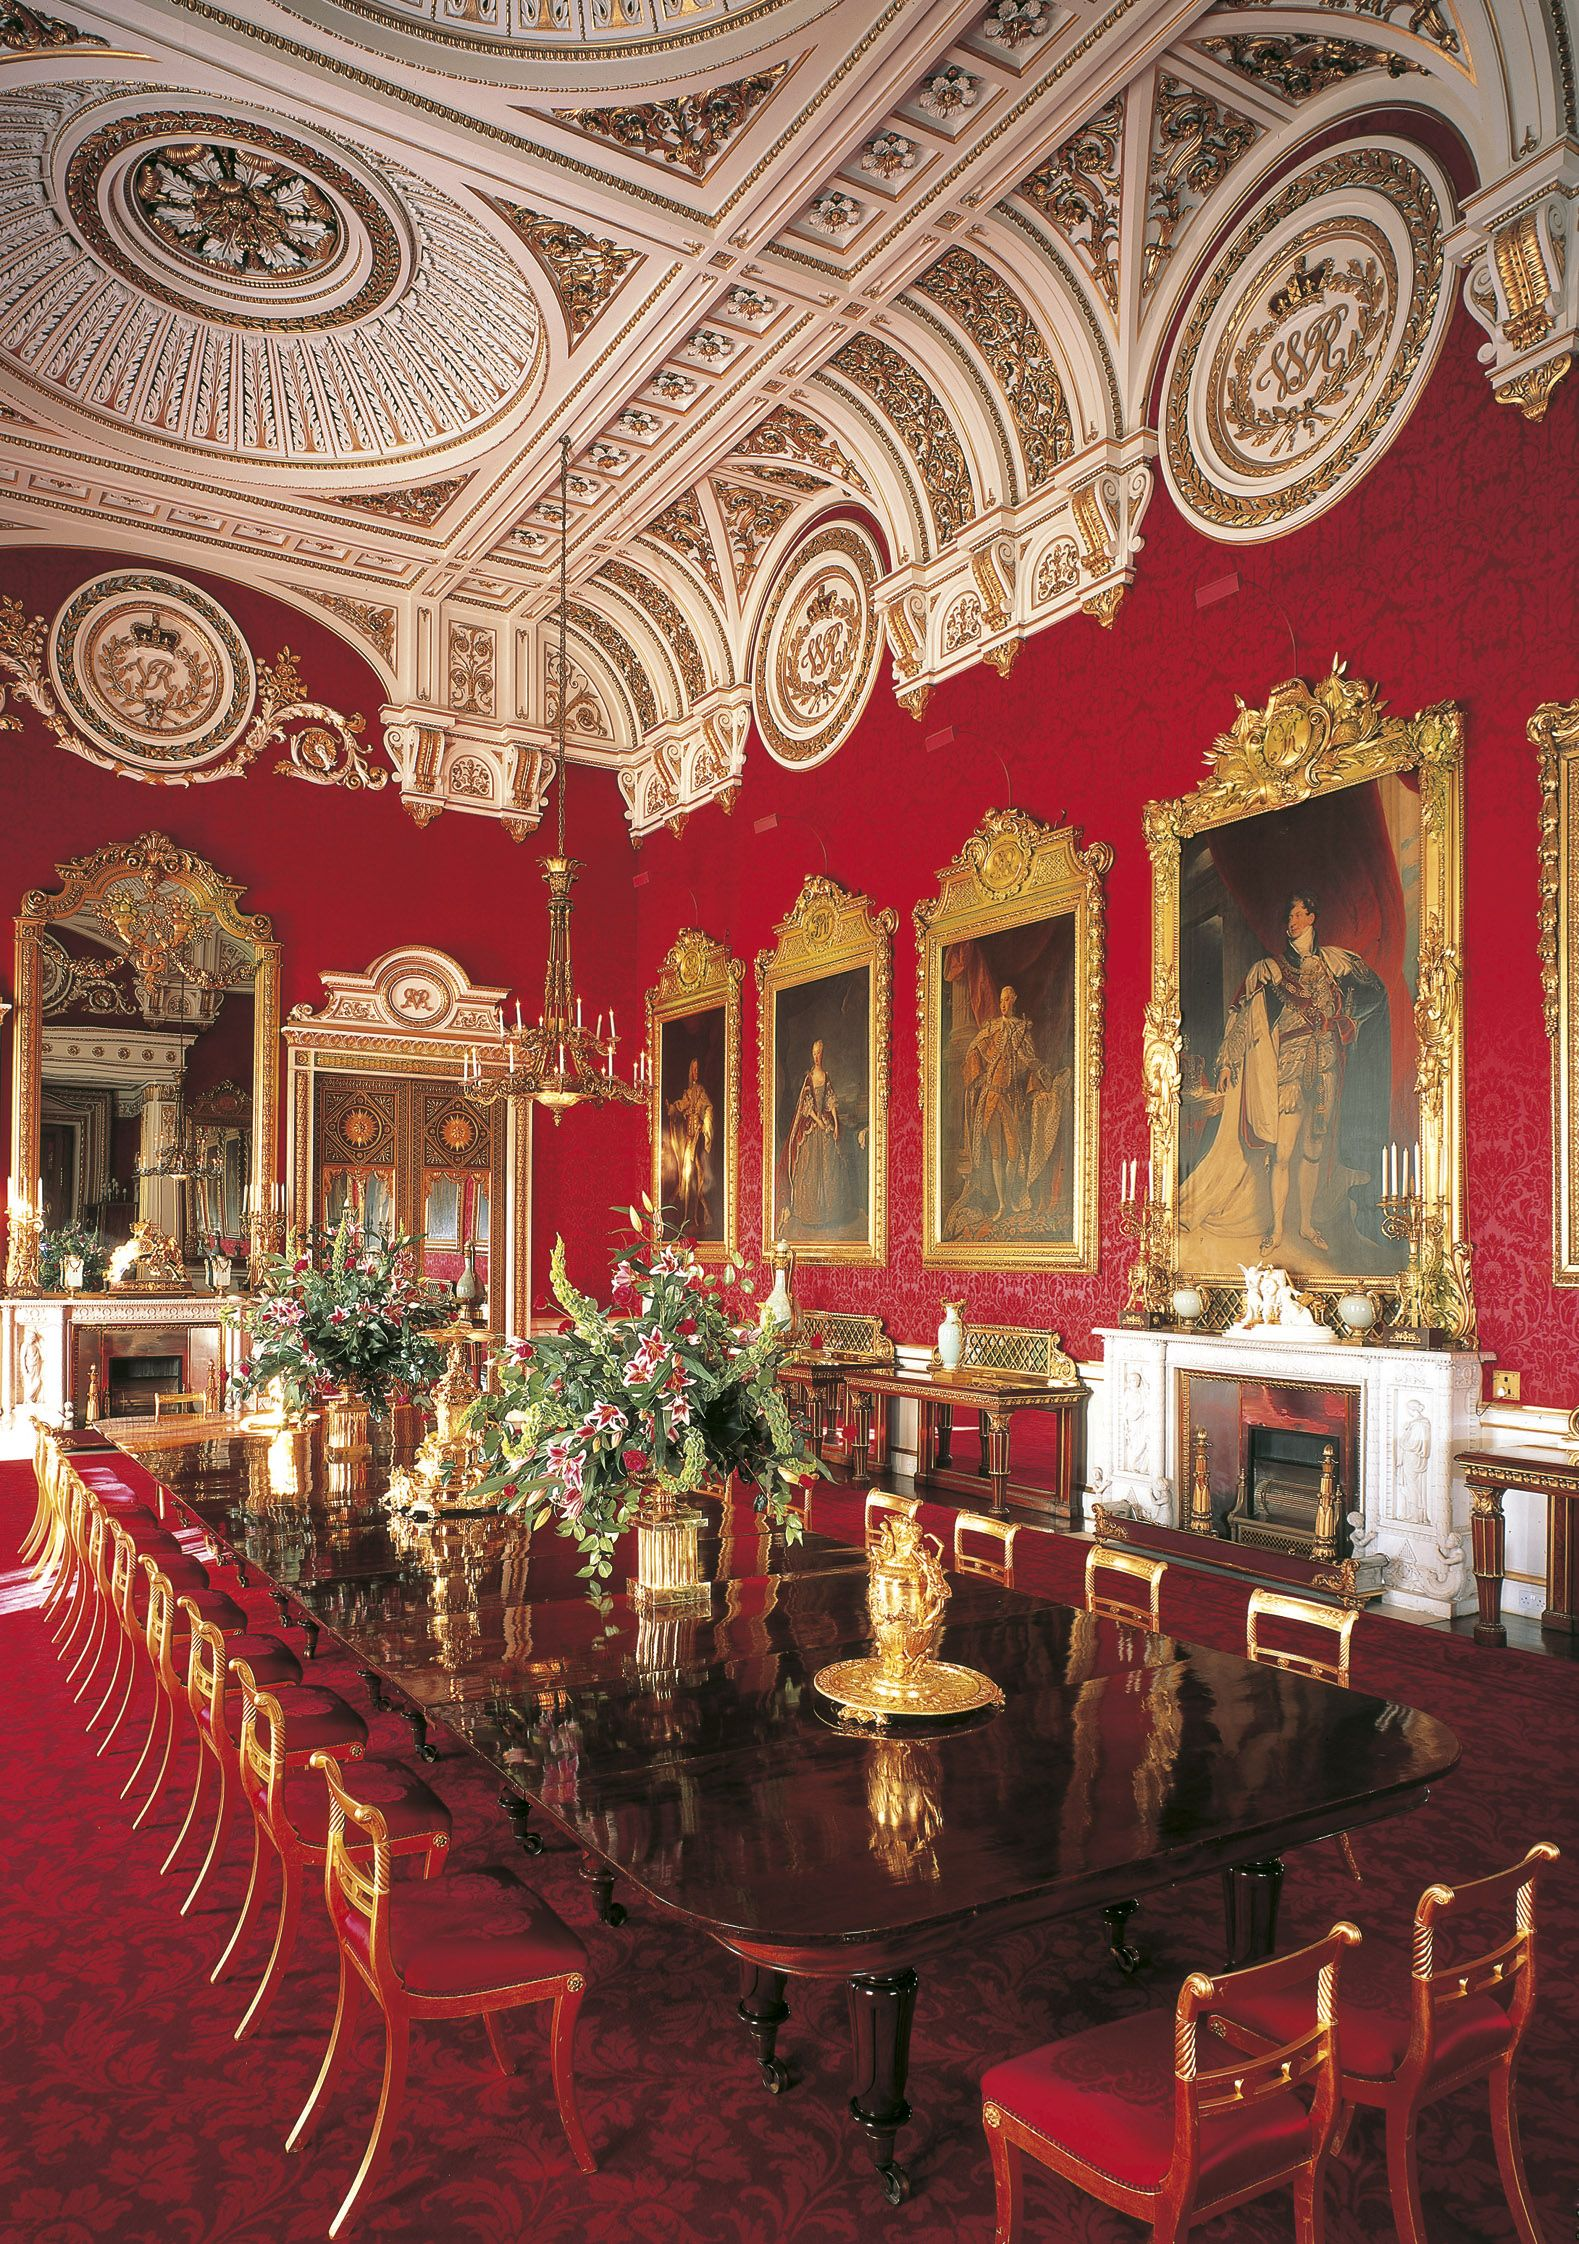 royal interior of the state dining room at buckingham